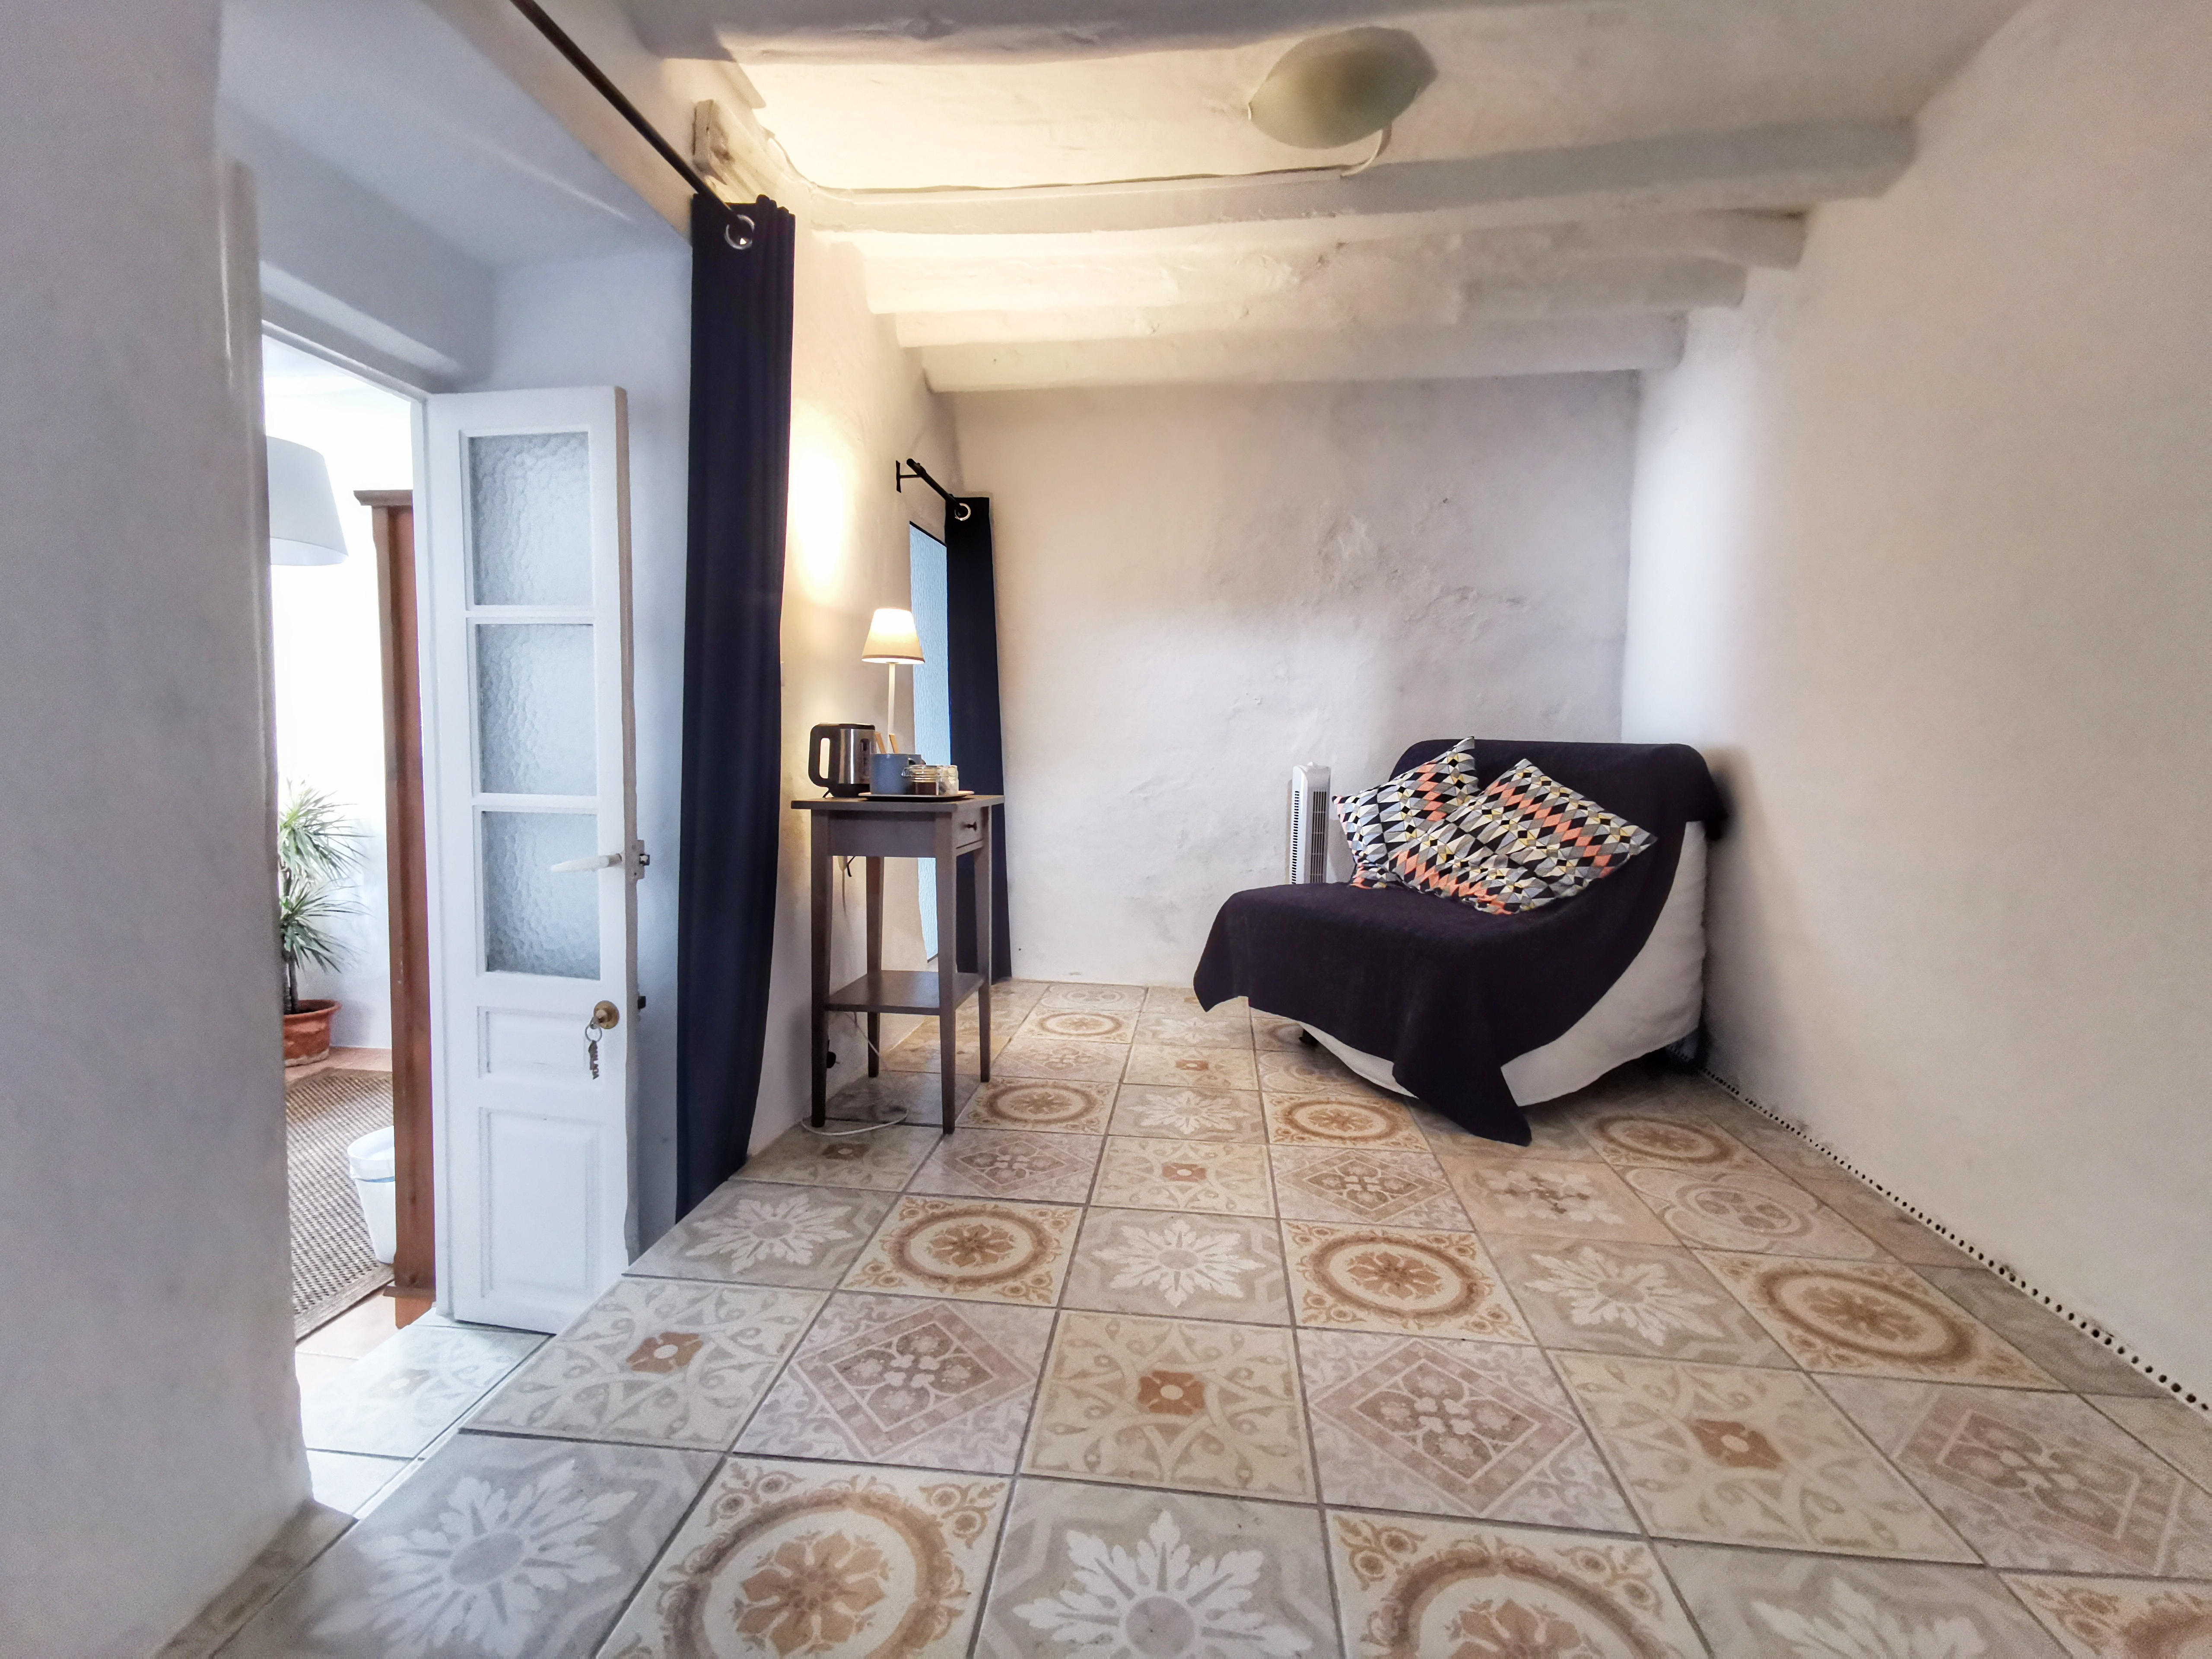 Málaga's extra storage / relaxing space